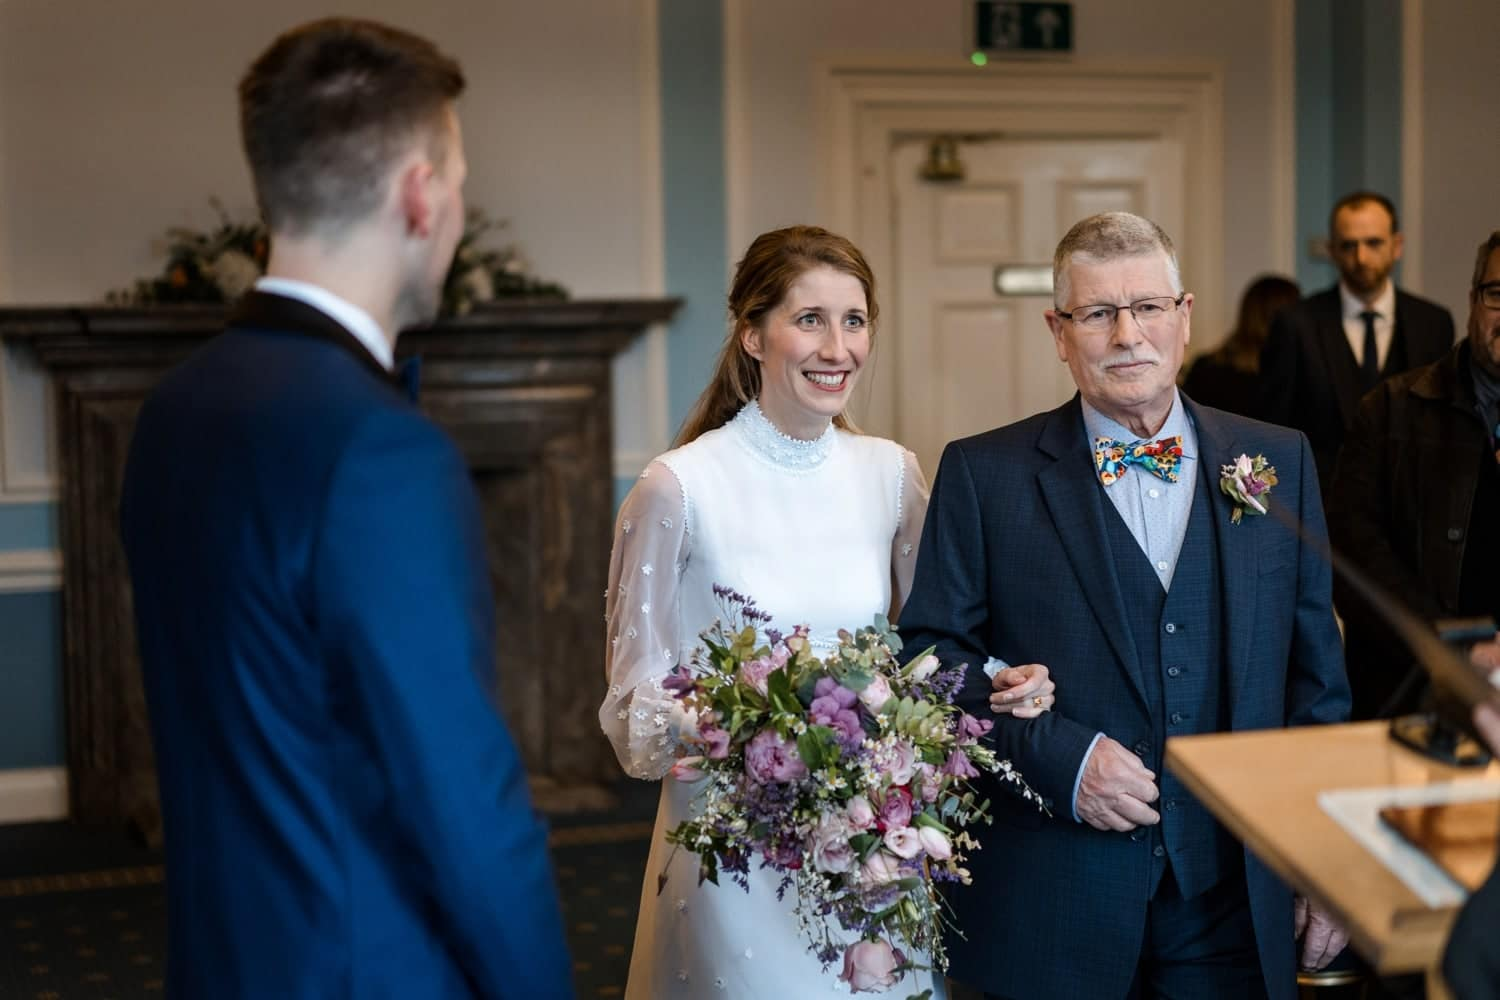 Cardiff City Hall marriage ceremony